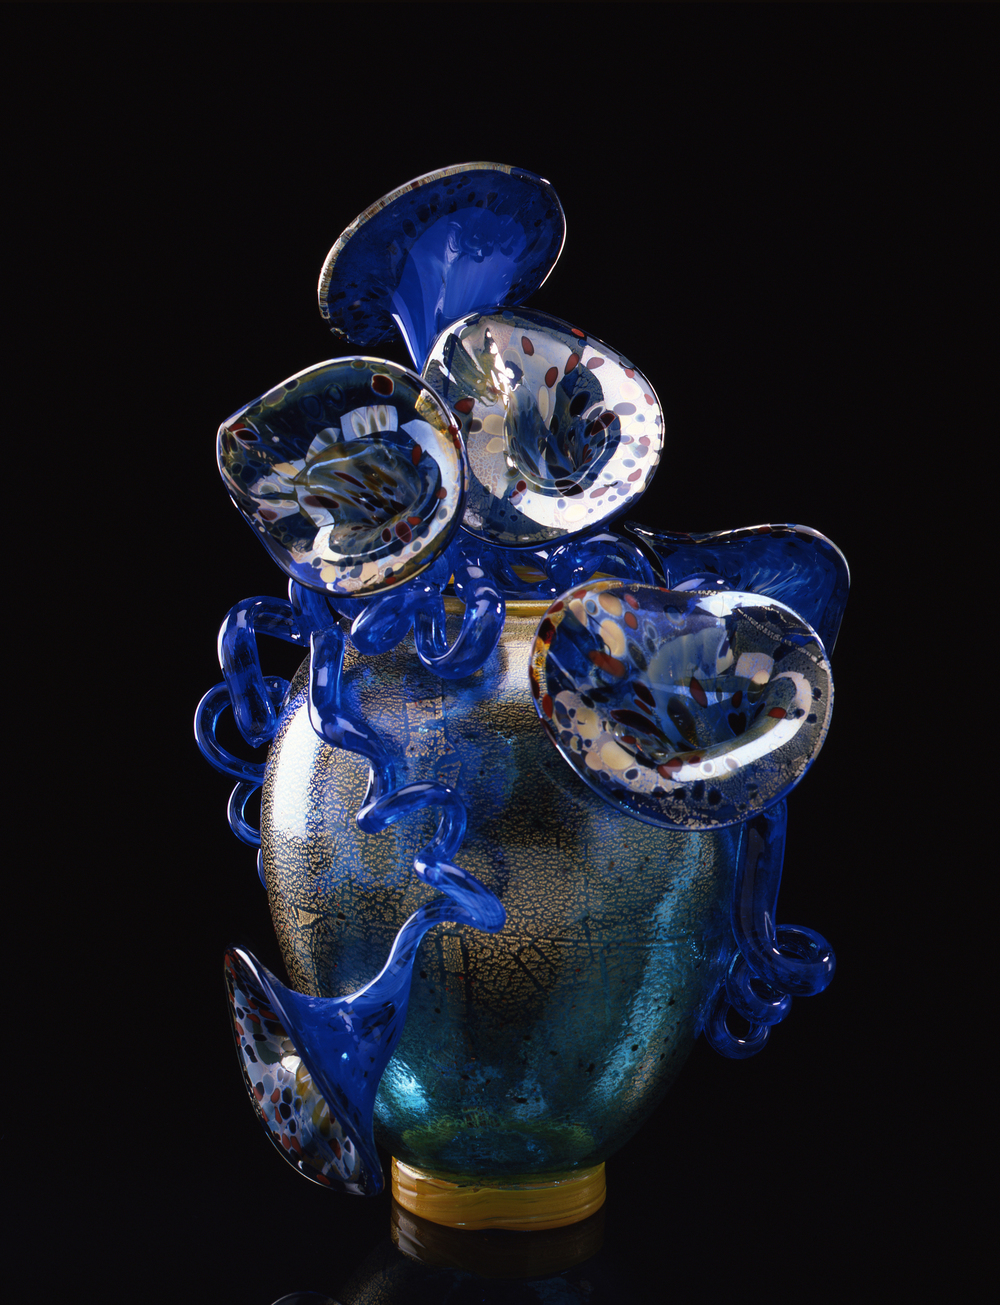 Dale Chihuly,  Green and Gold Venetian  (1990, glass, 23 x 17 x 16 inches)